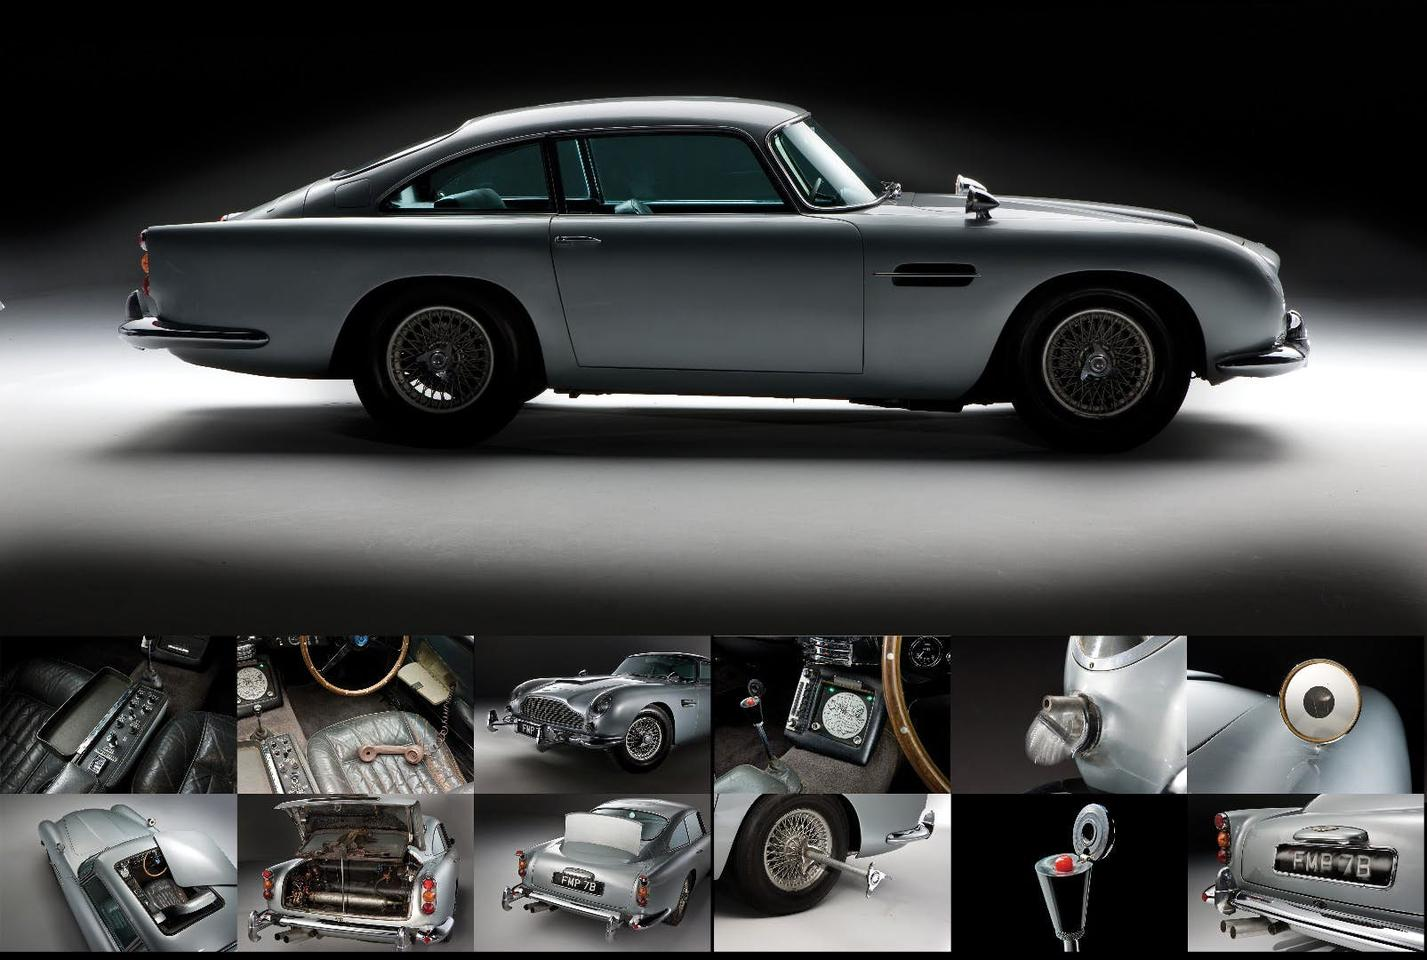 An Original James Bond Goldfinger Aston Martin Db5 Heads For Auction